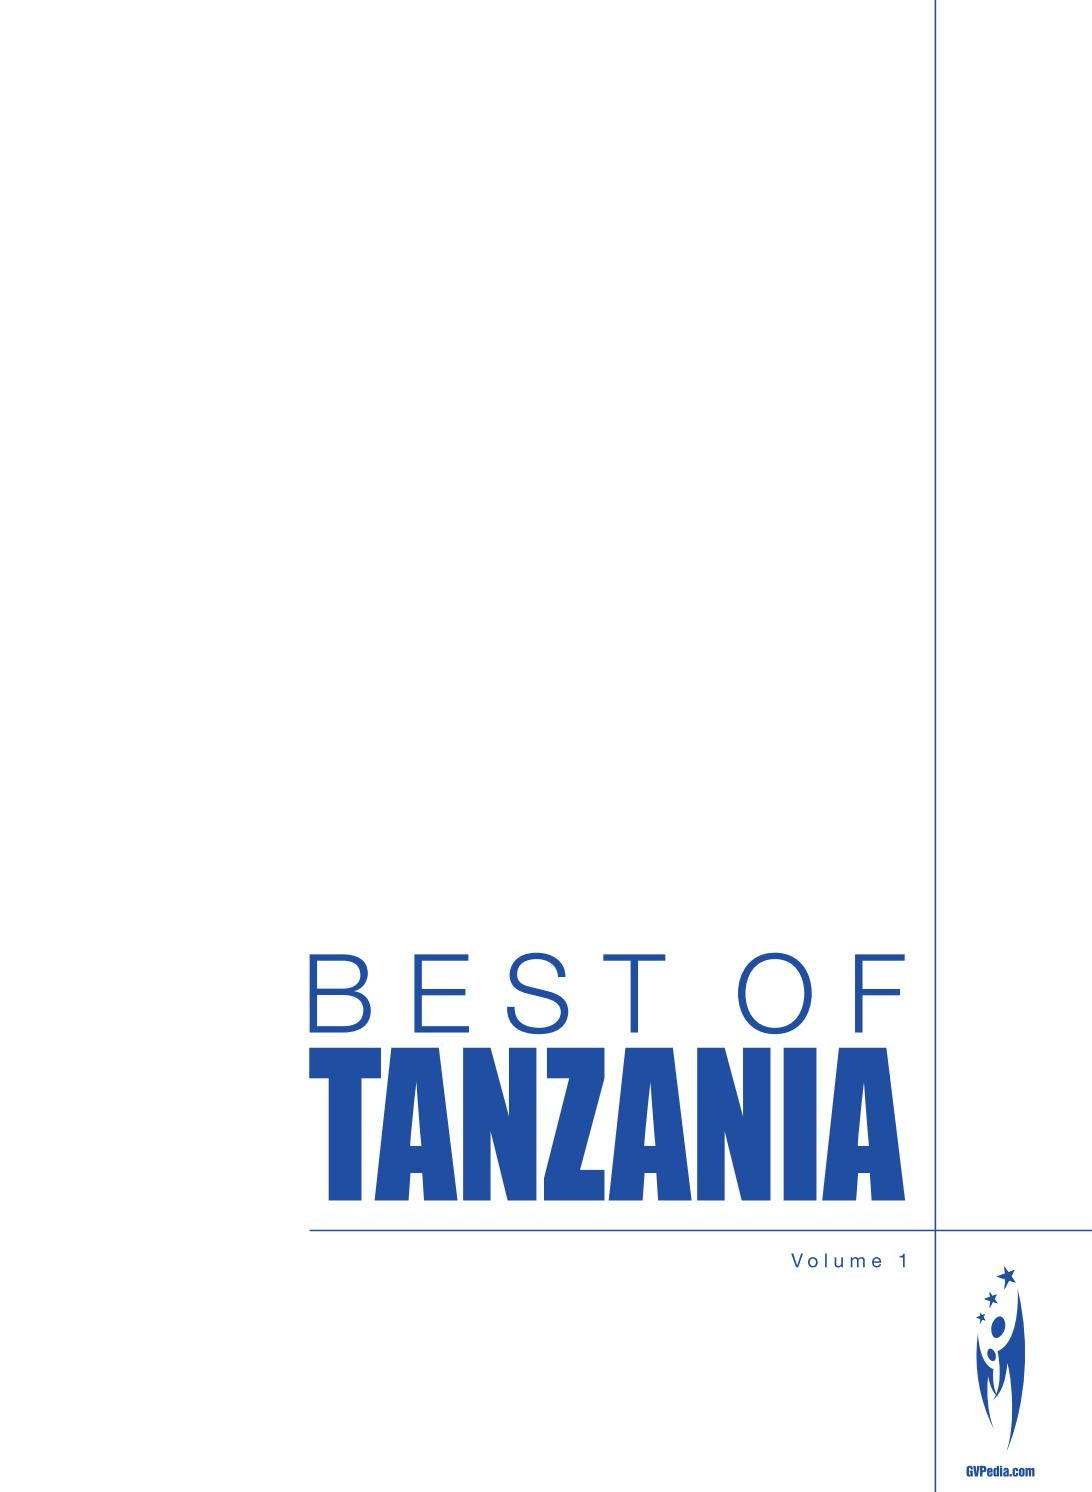 BEST OF TANZANIA - Volume 1 by Sven Boermeester - issuu